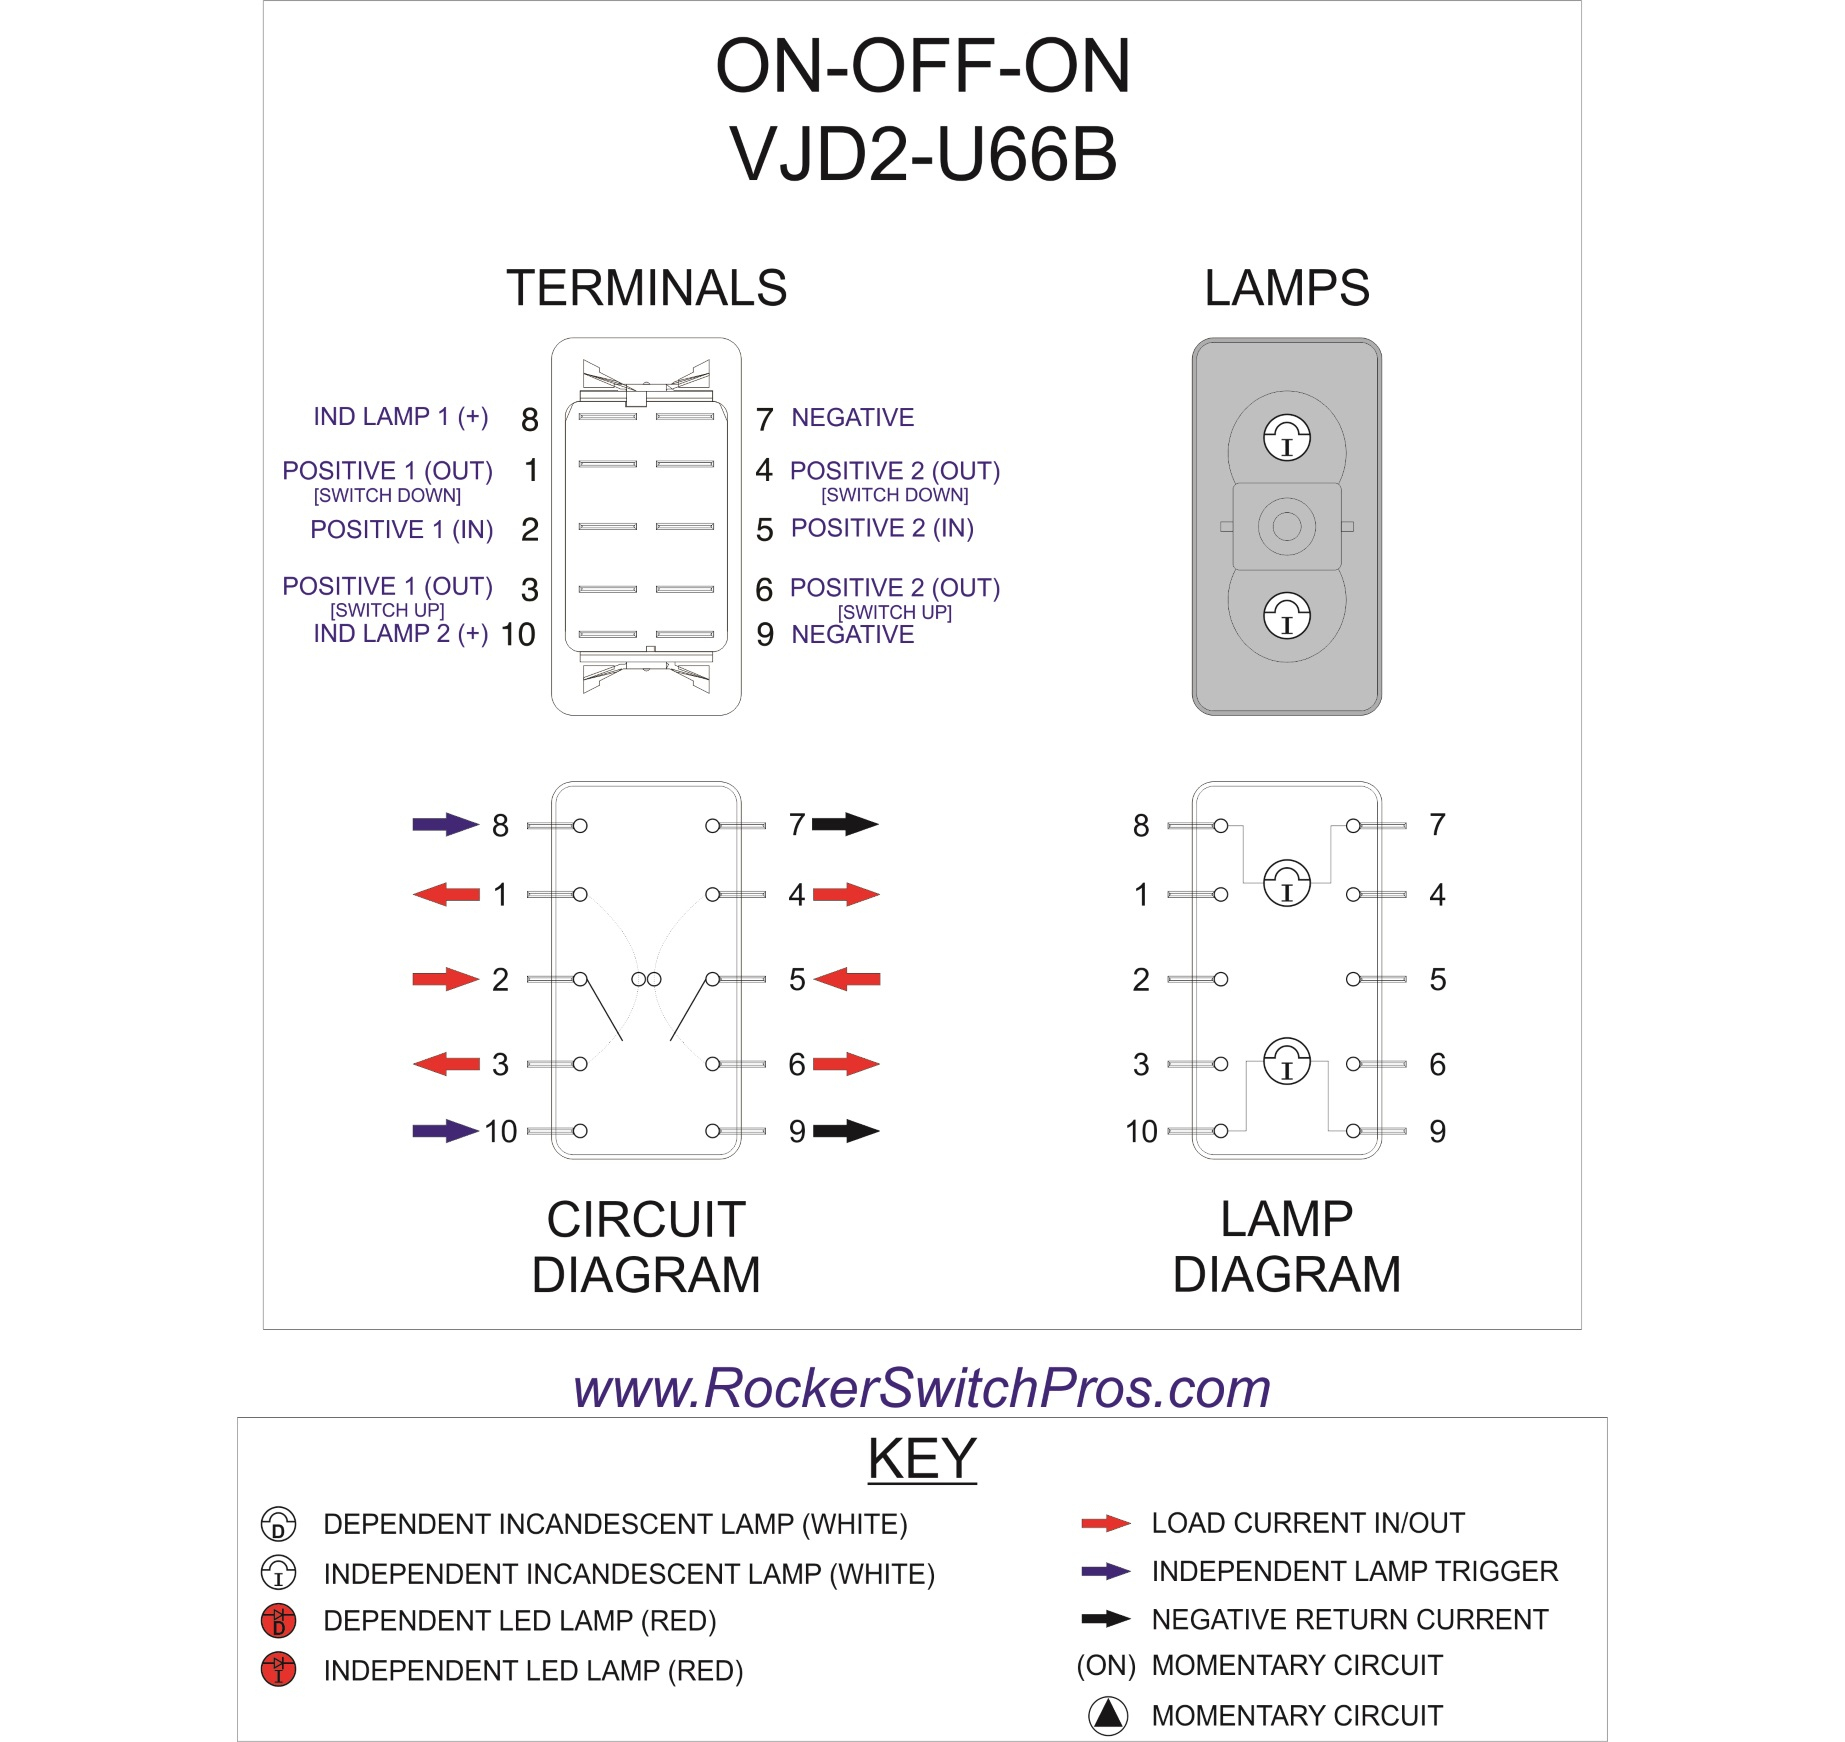 dpdt rocker switch | on off on | 2 ind lamps – carling switch wiring diagram